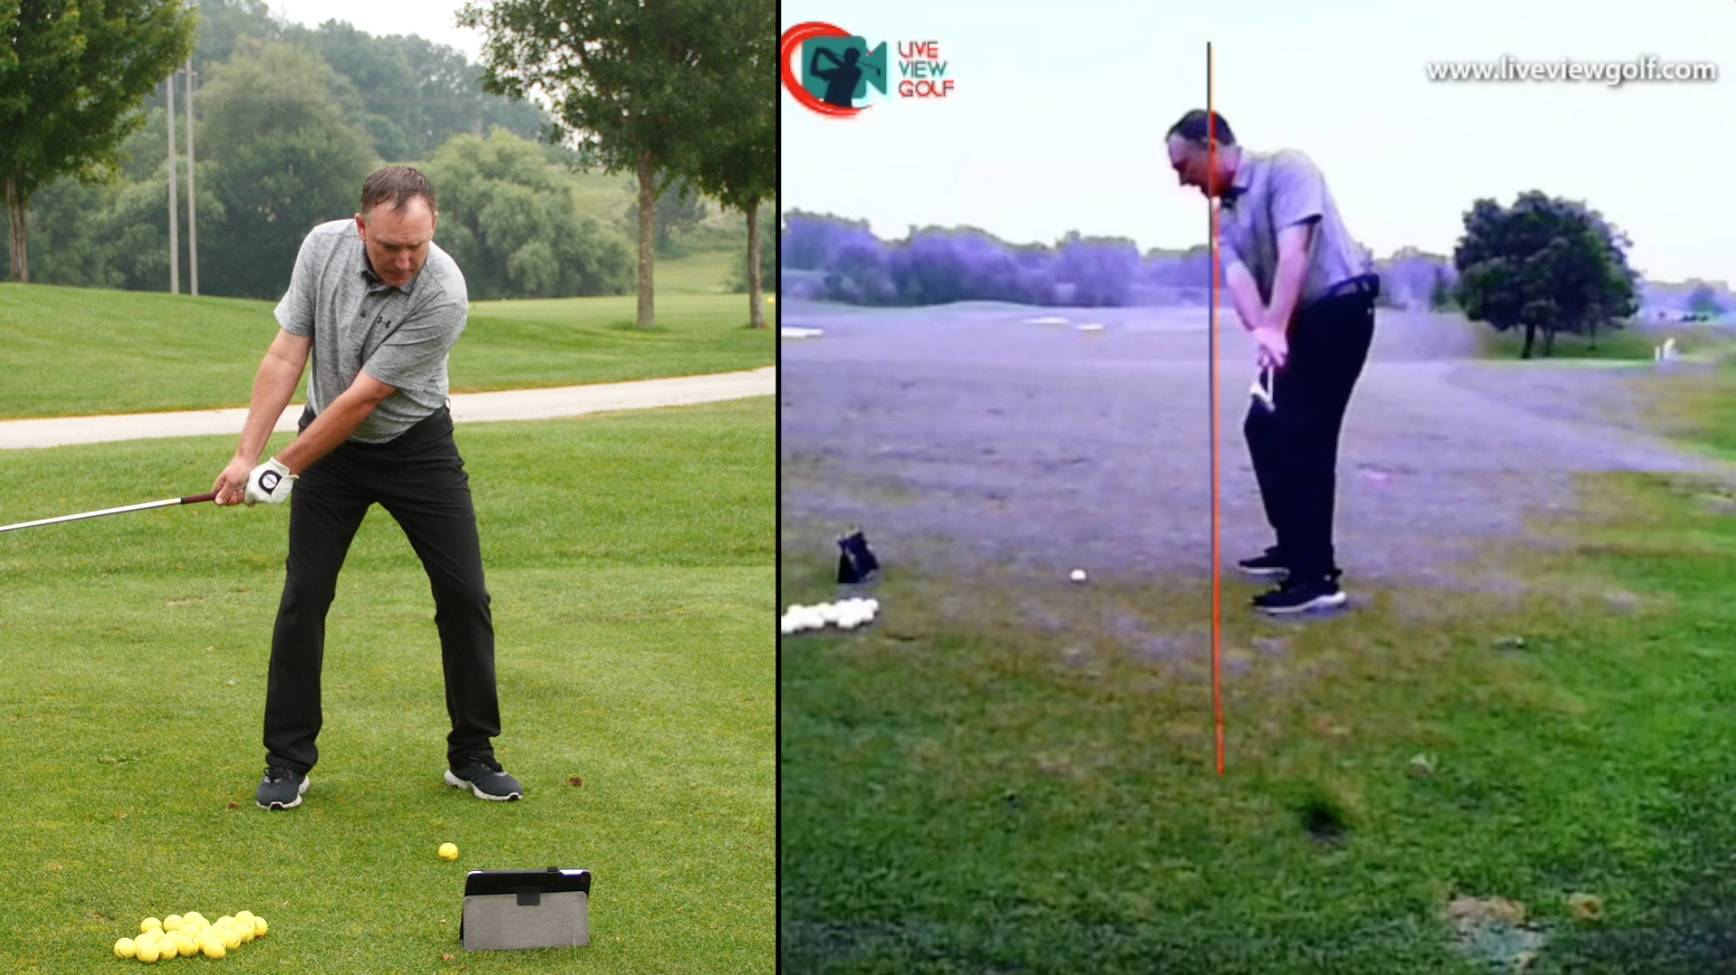 Live View Golf's Digital Swing Technology gives you real-time feedback on every swing you take